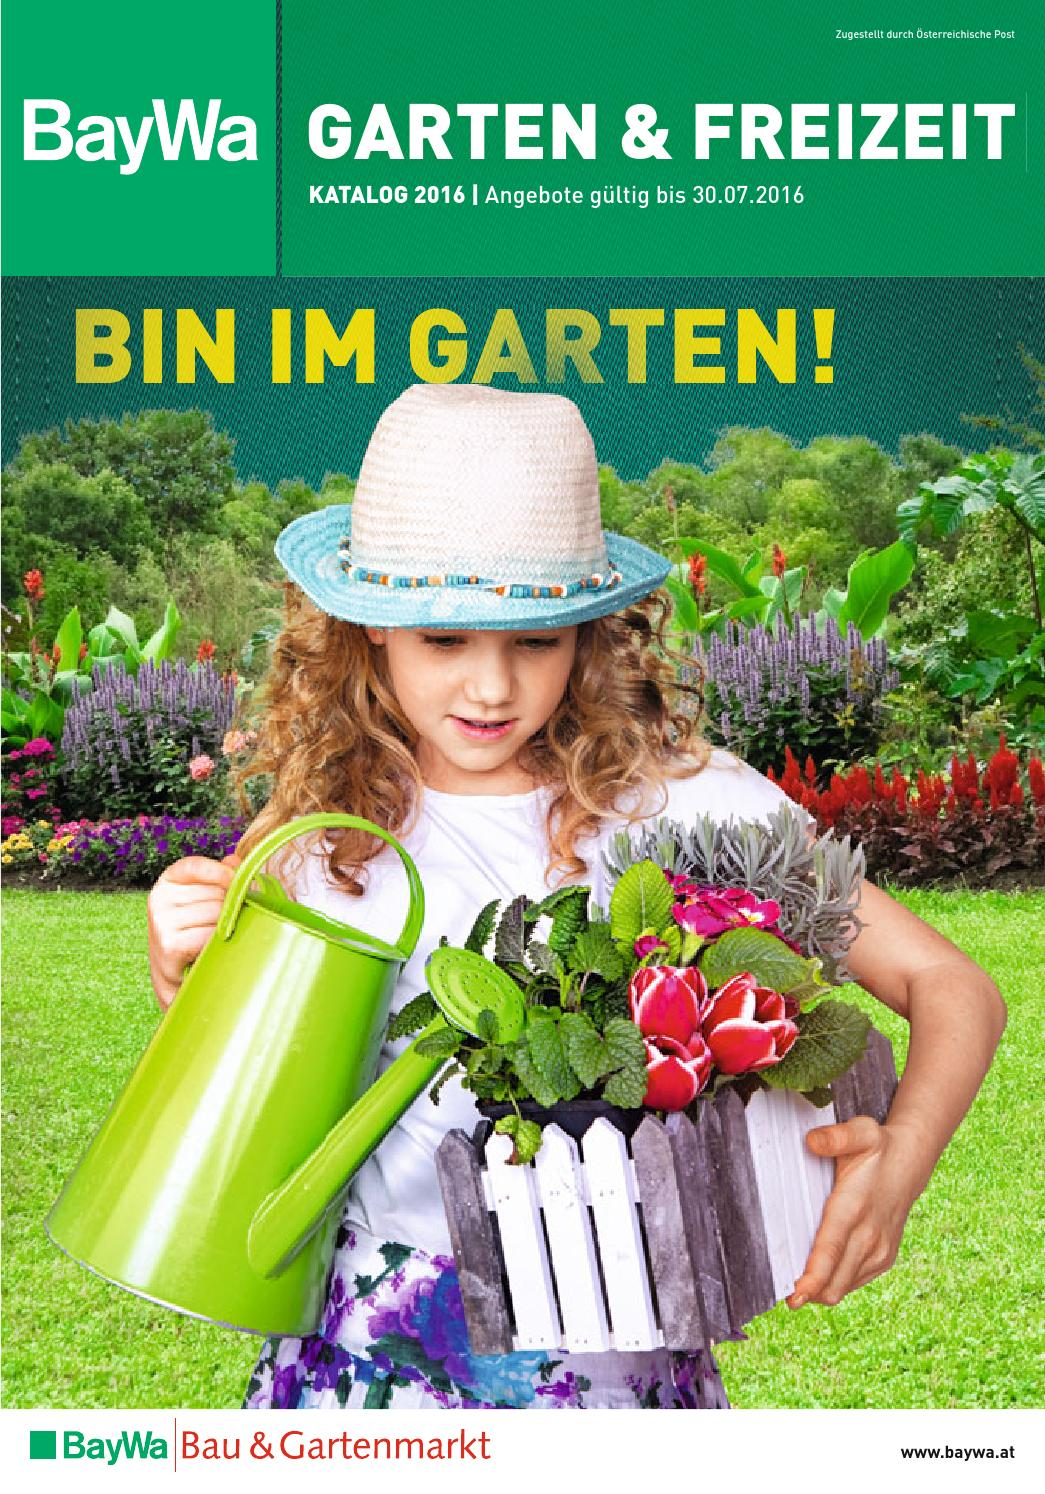 Baywa Garten Baywa Kw11 By Russmedia Digital Gmbh Issuu